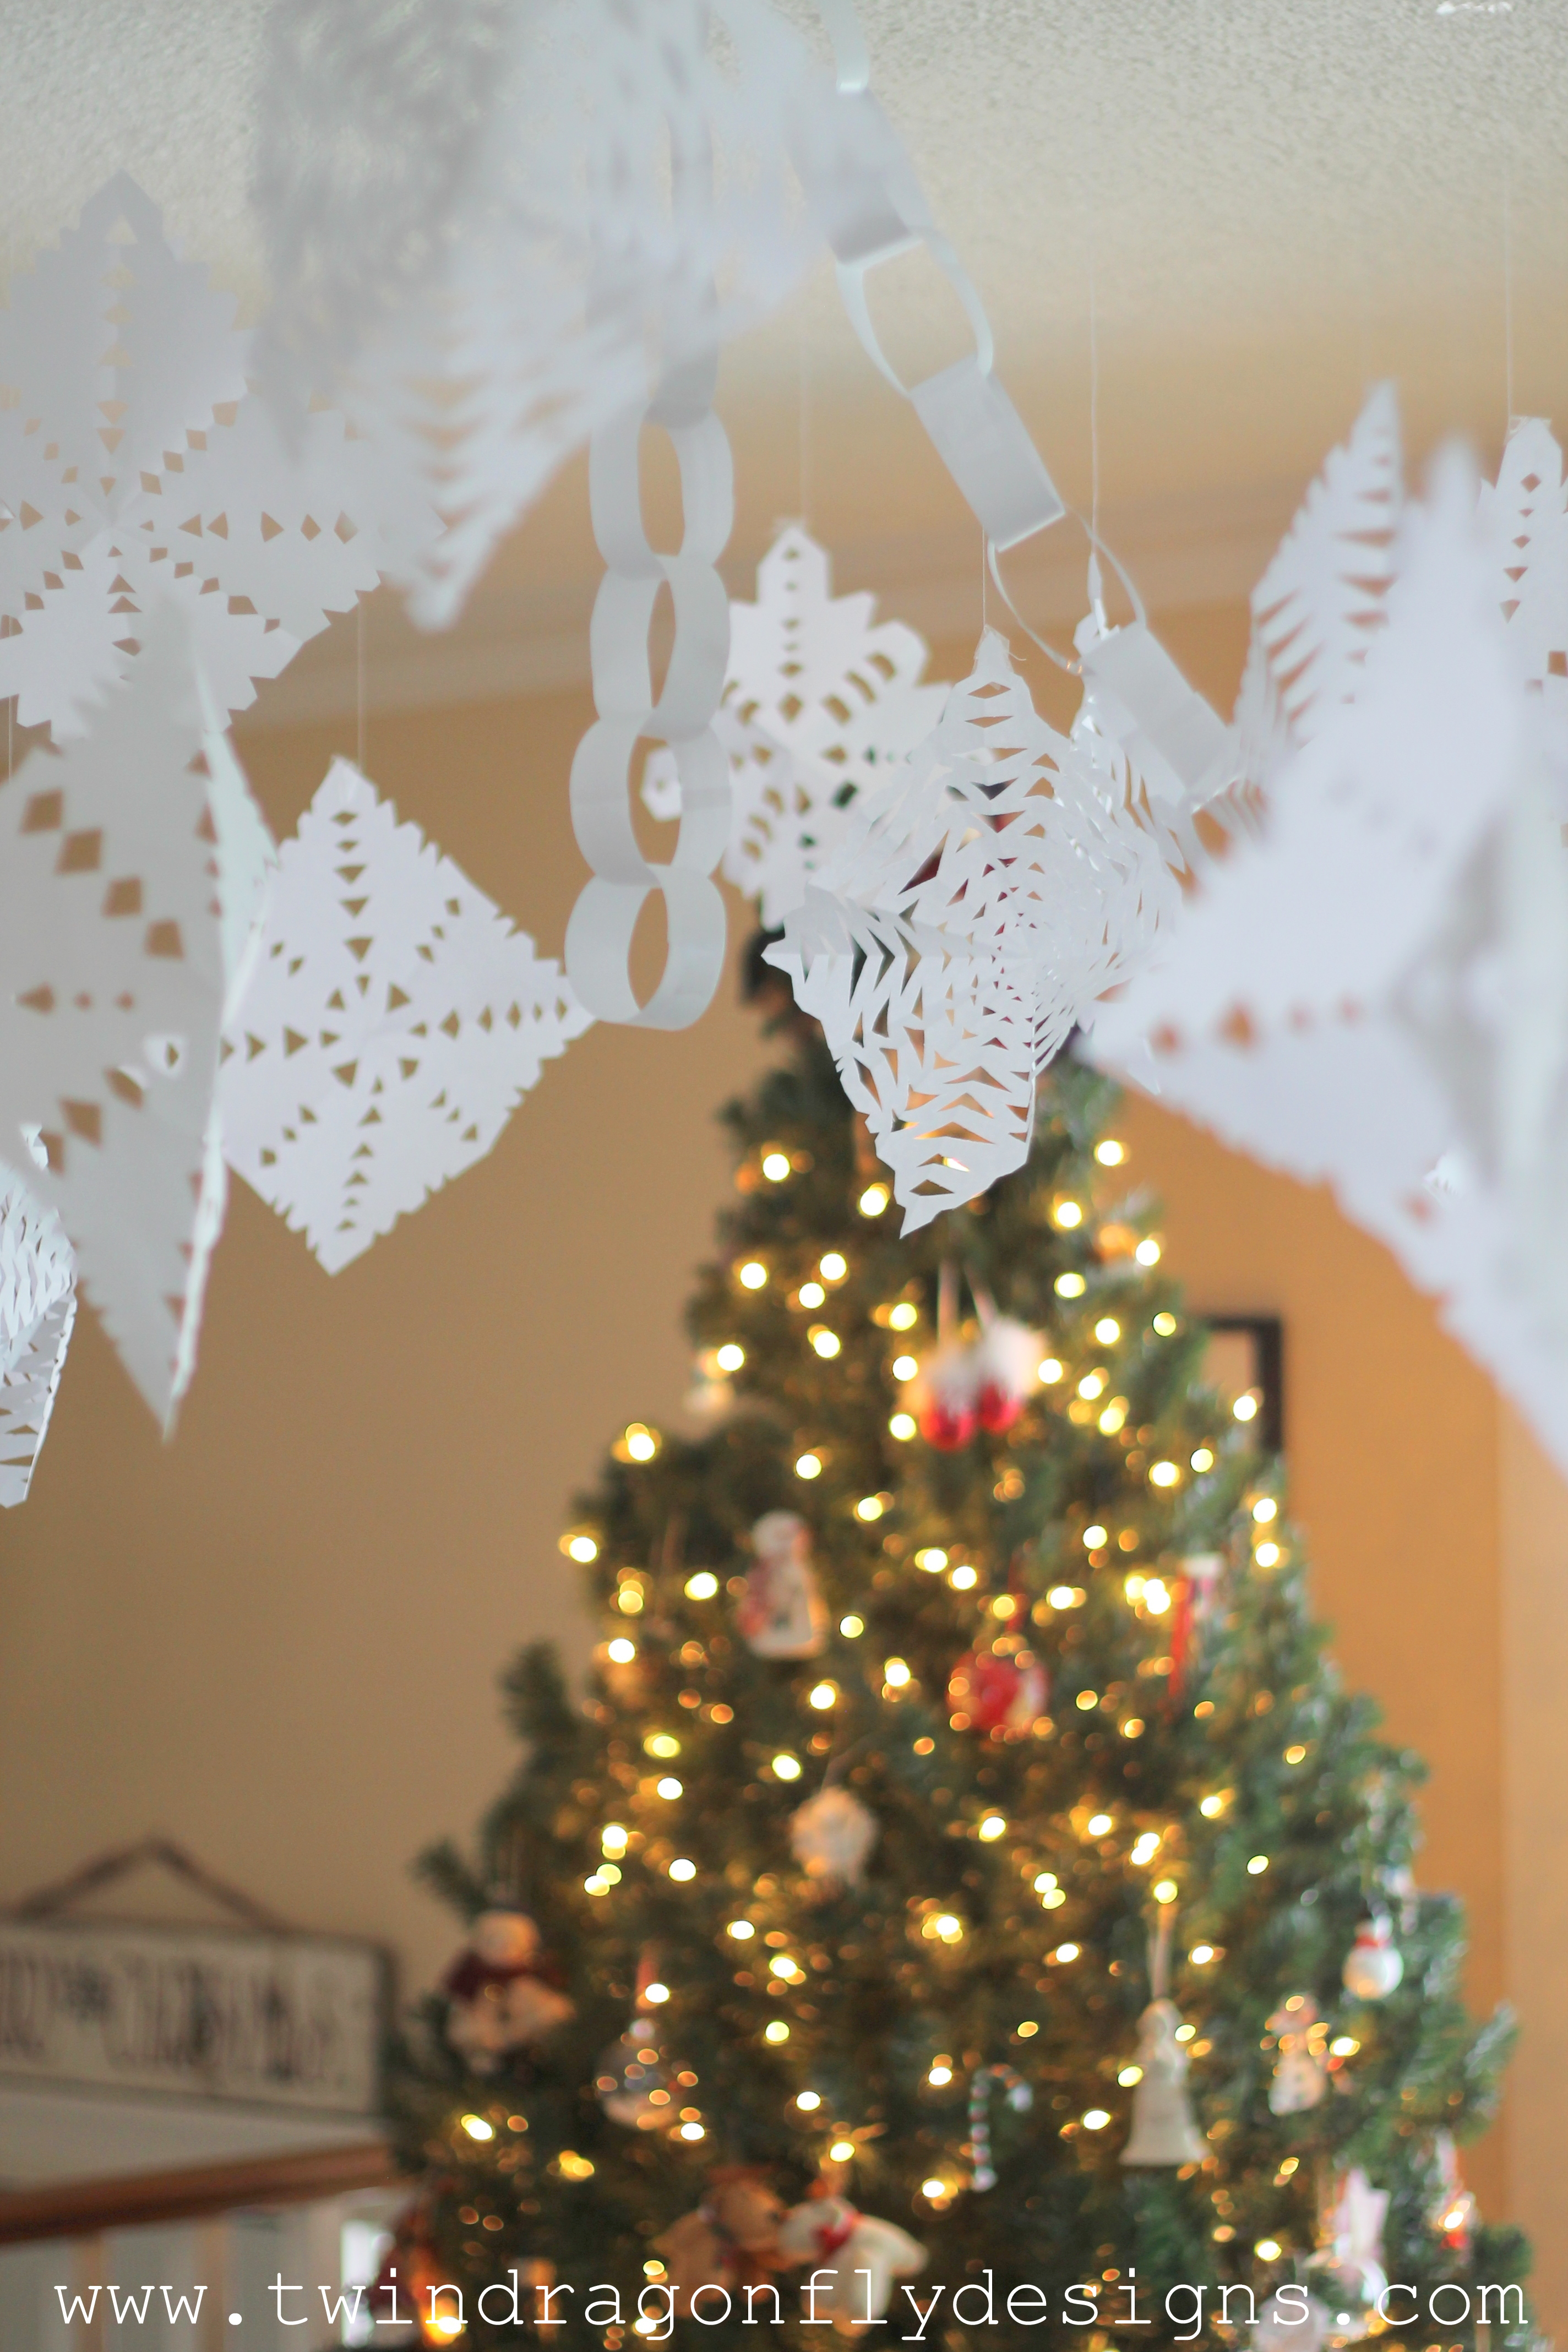 elf holiday party ideas dragonfly designs - Elf Christmas Party Decorations